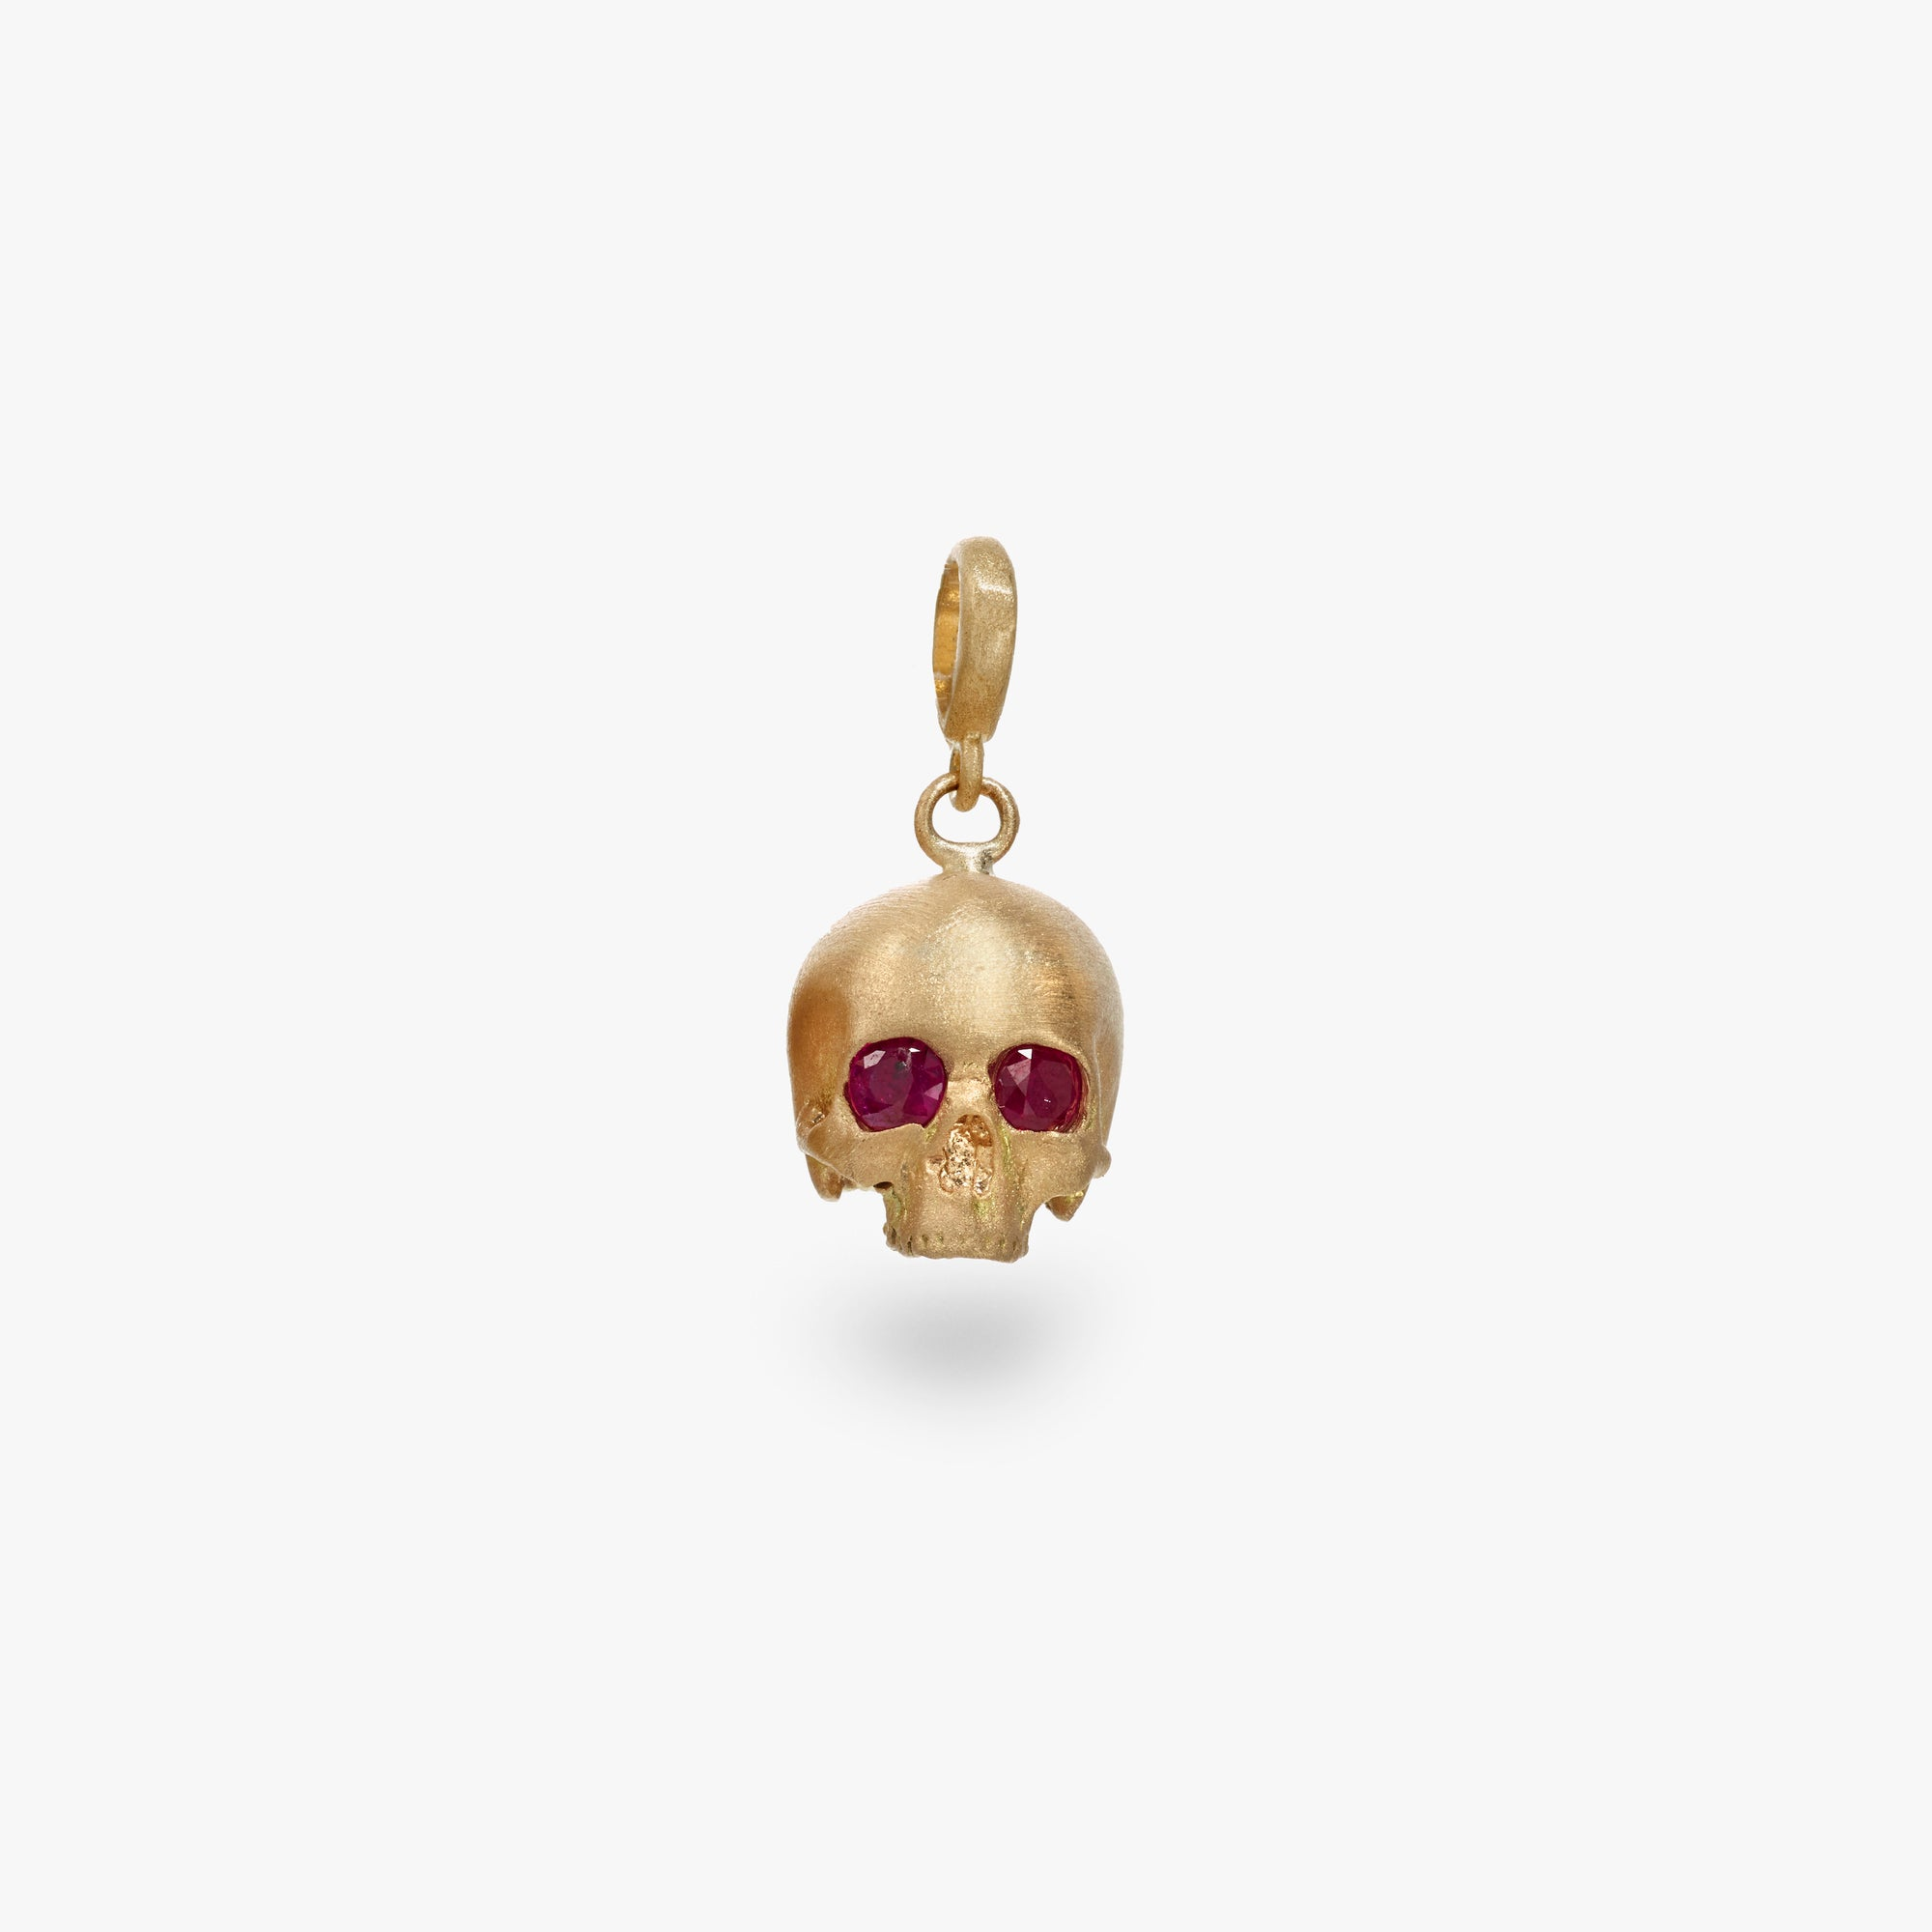 Skull Charm with Ruby Eyes